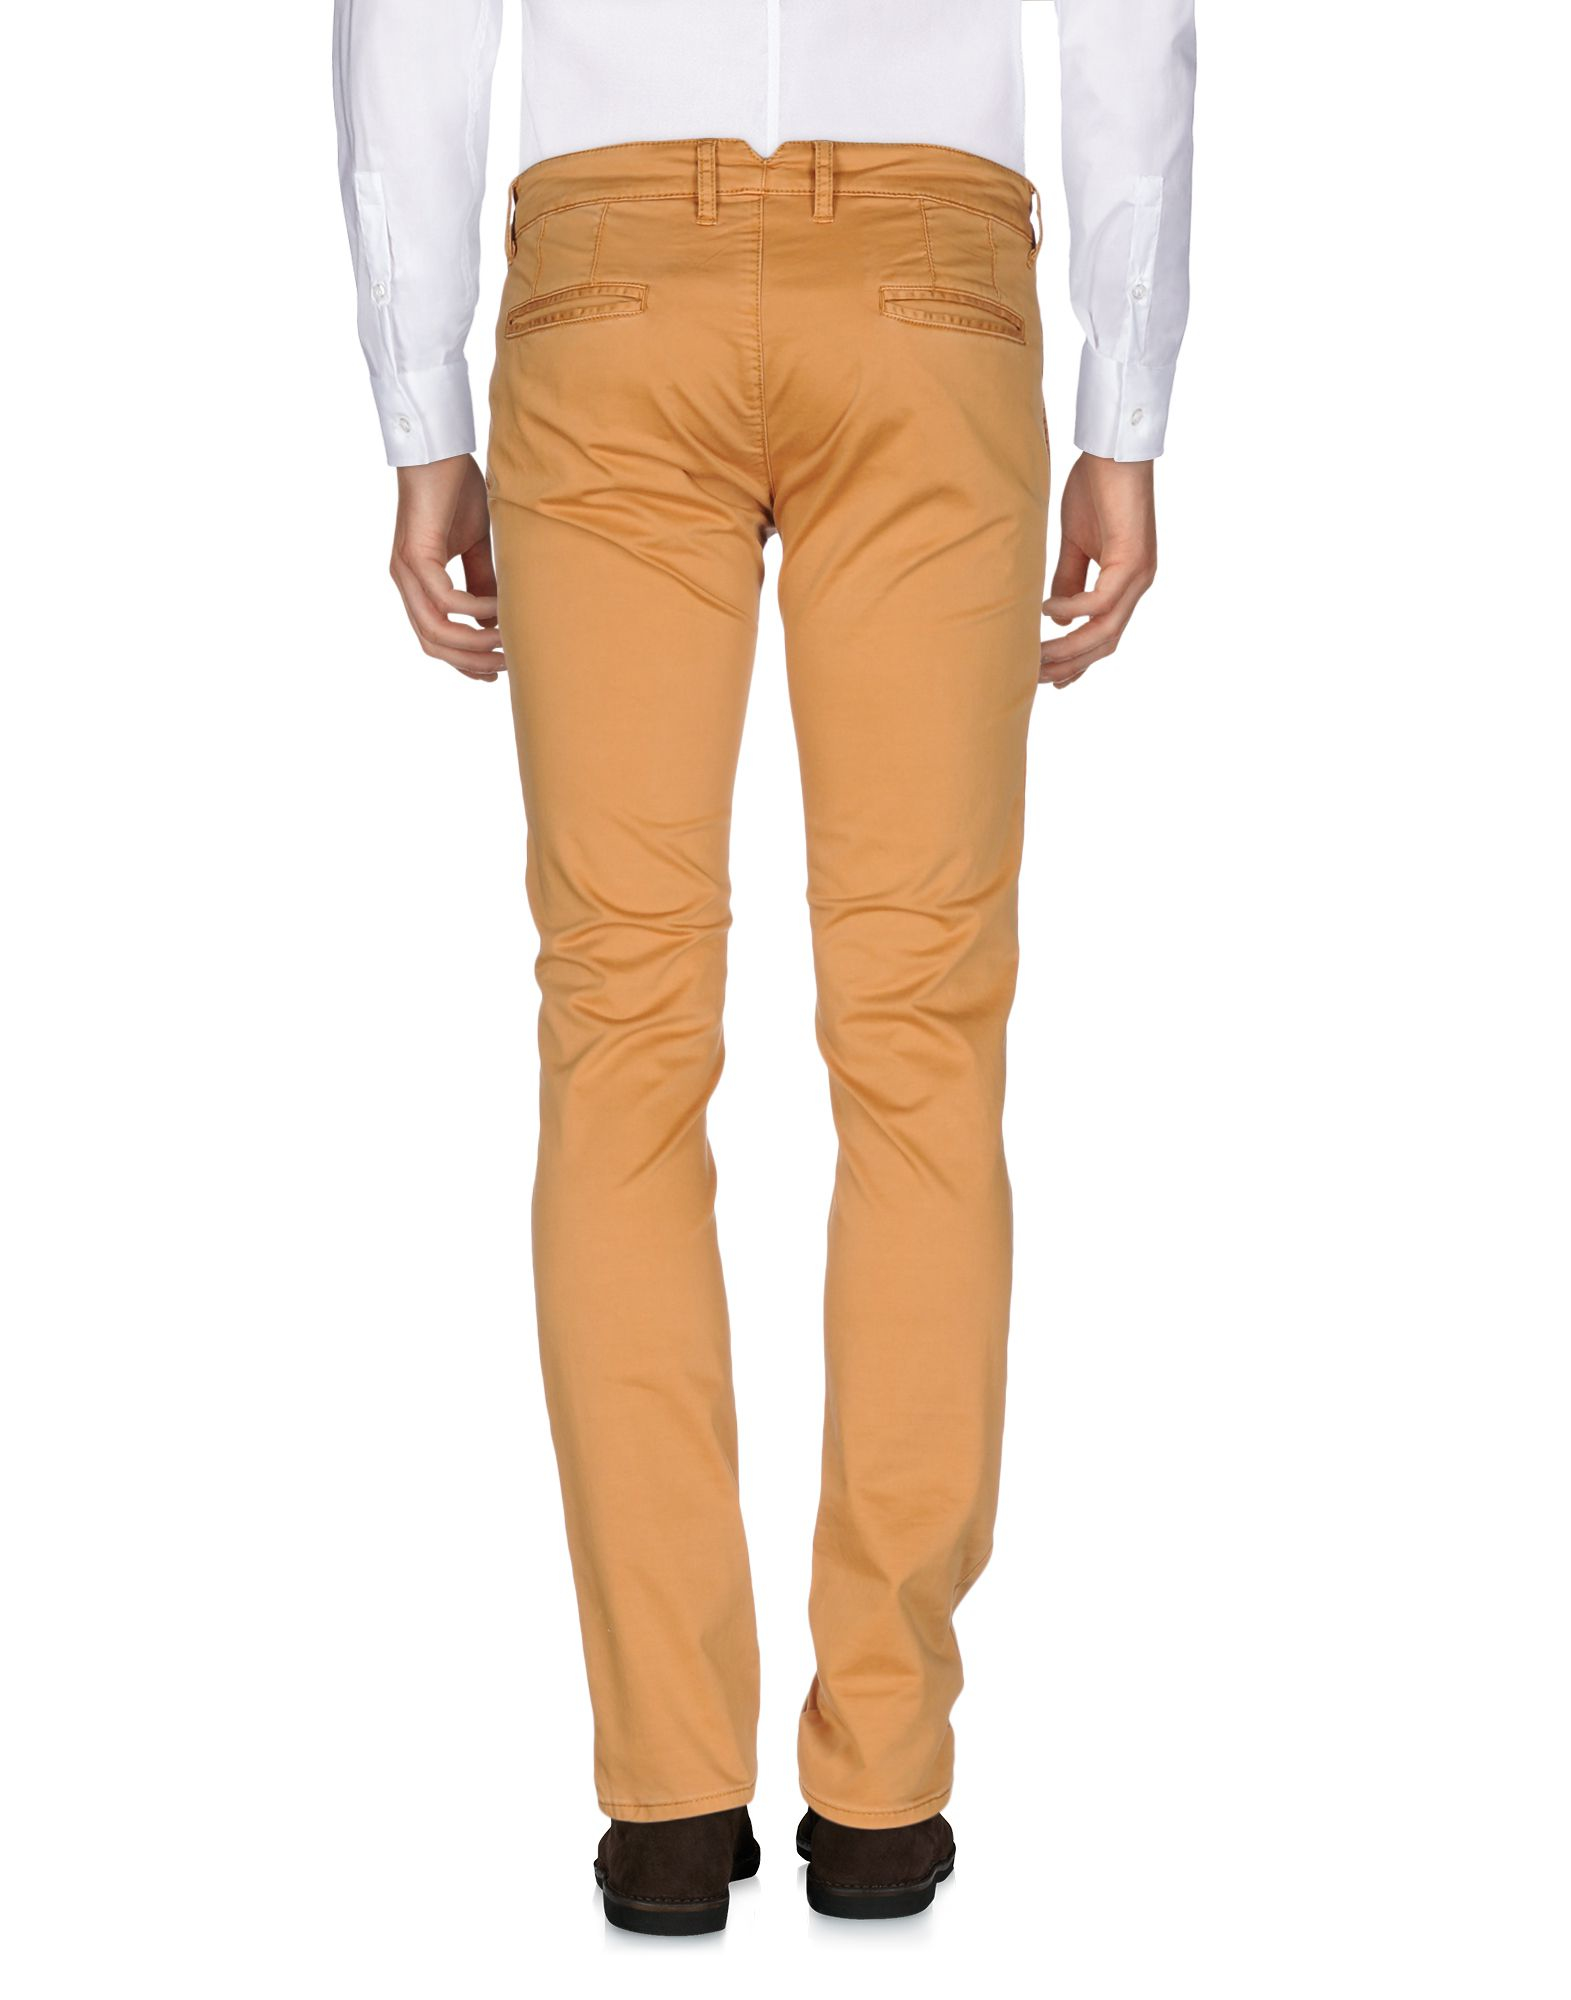 Armani jeans Casual Pants in Brown for Men